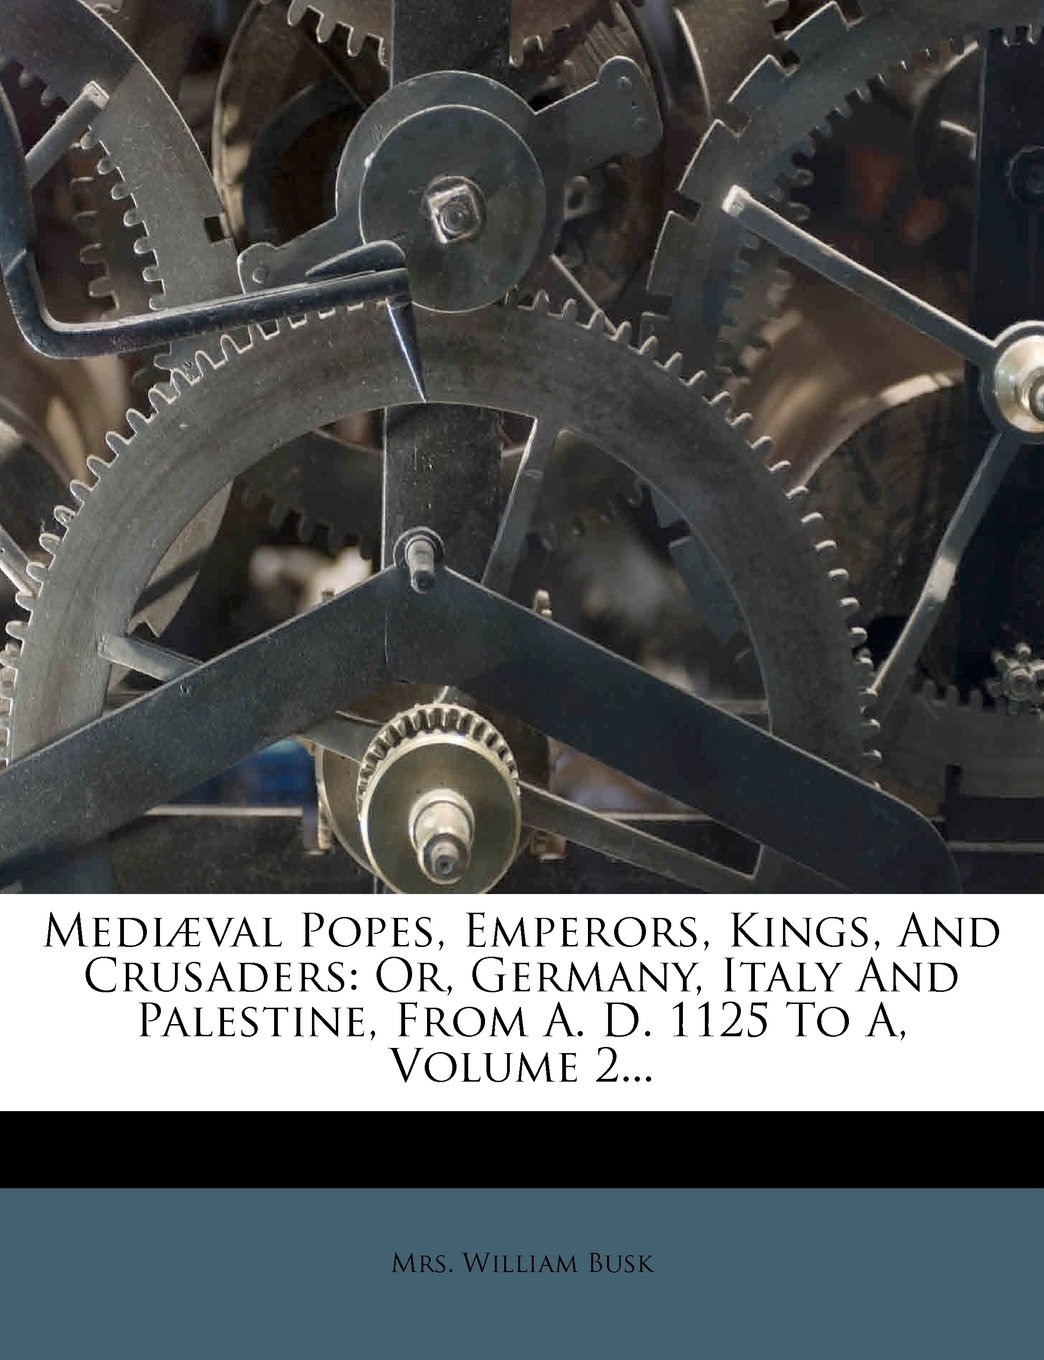 Read Online Mediæval Popes, Emperors, Kings, And Crusaders: Or, Germany, Italy And Palestine, From A. D. 1125 To A, Volume 2... pdf